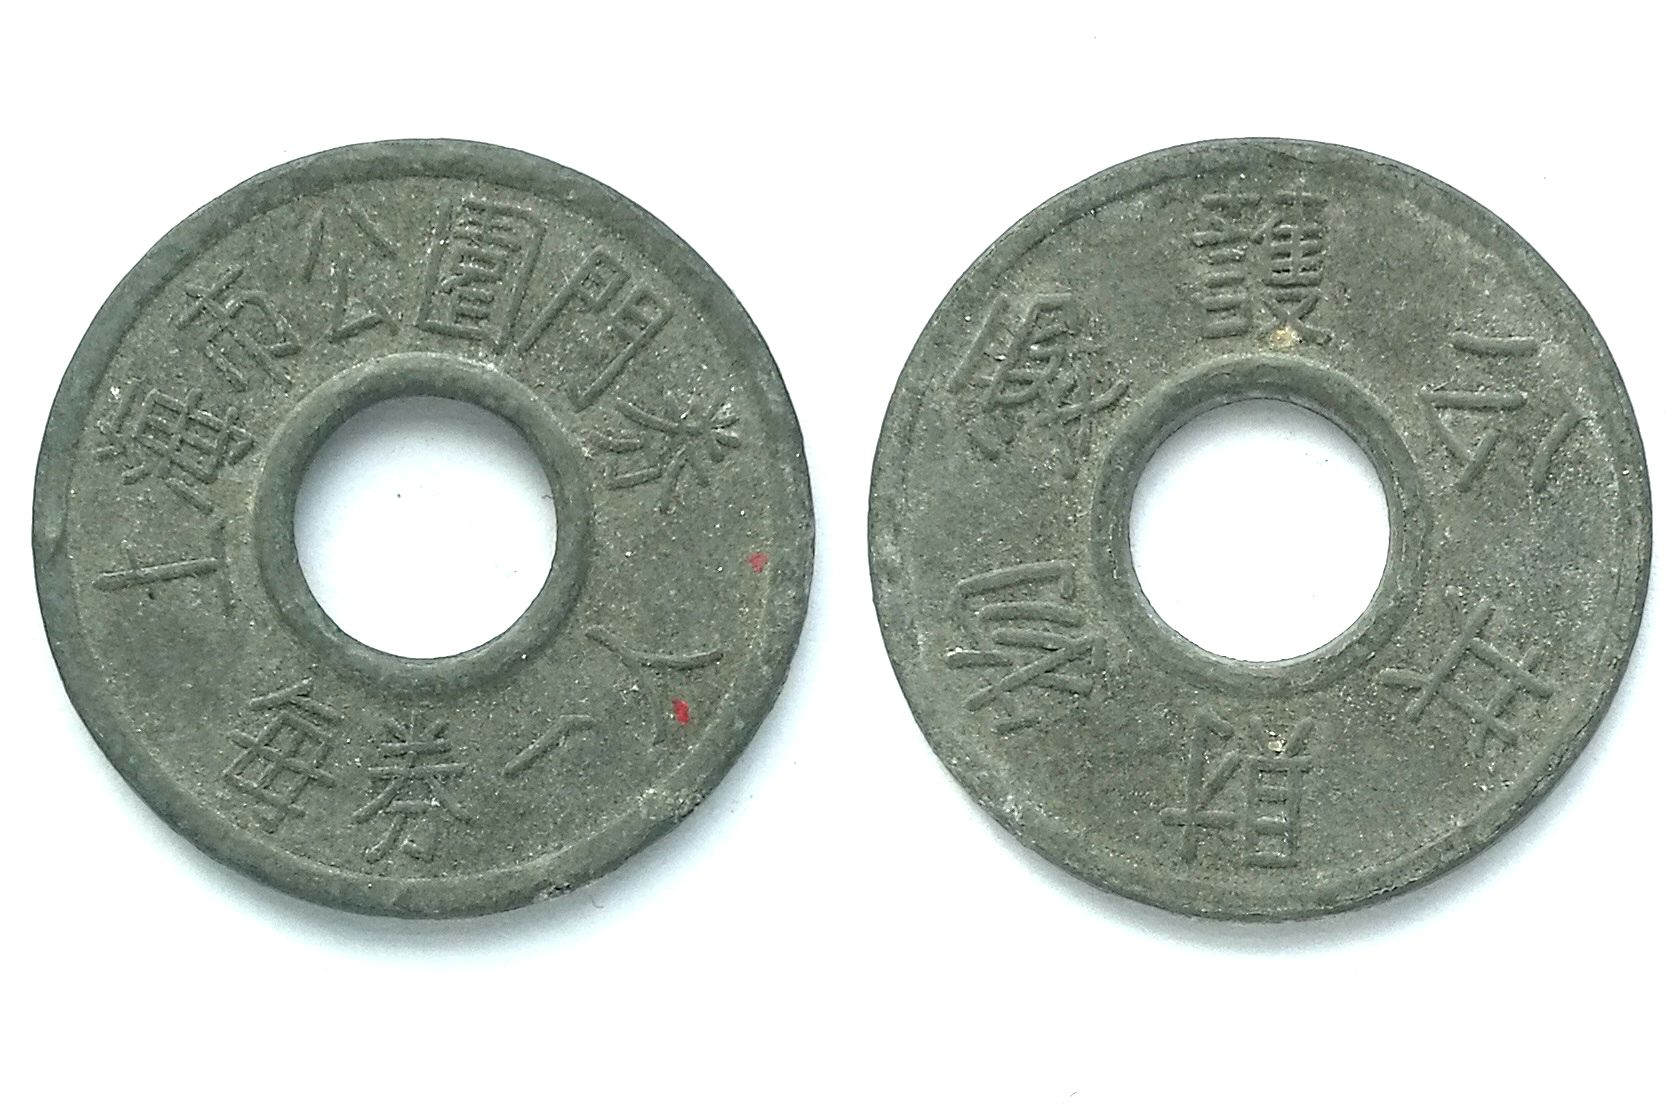 BT080, Shanghai Park Token, Pb-Sn Alloy, with Hole